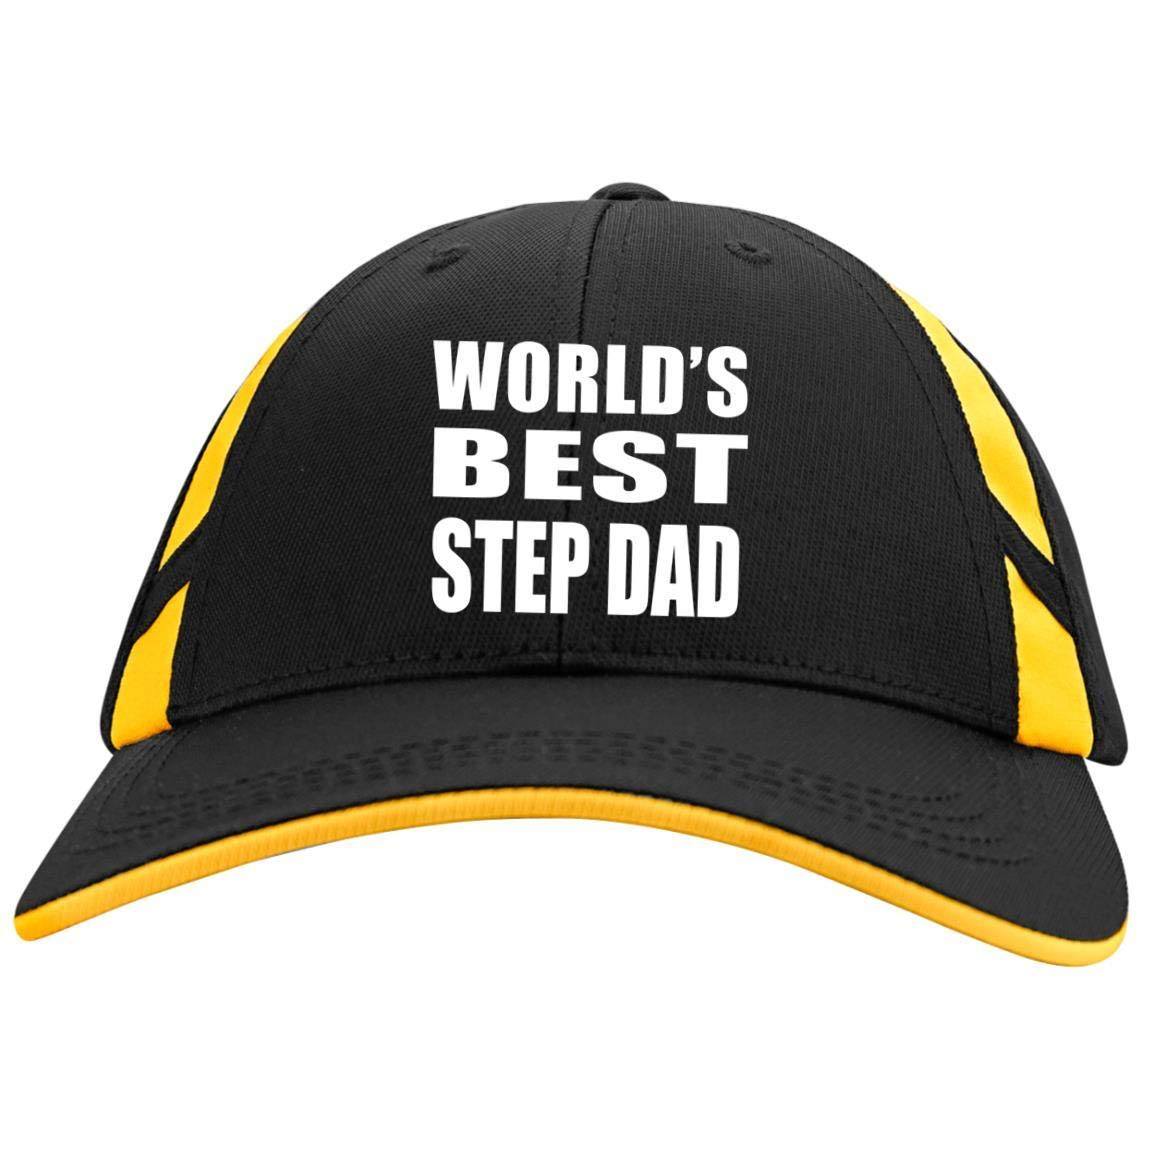 3529a16ed7d Amazon.com  World s Best Step Dad - Mesh Inset Cap Black Gold One Size   Clothing